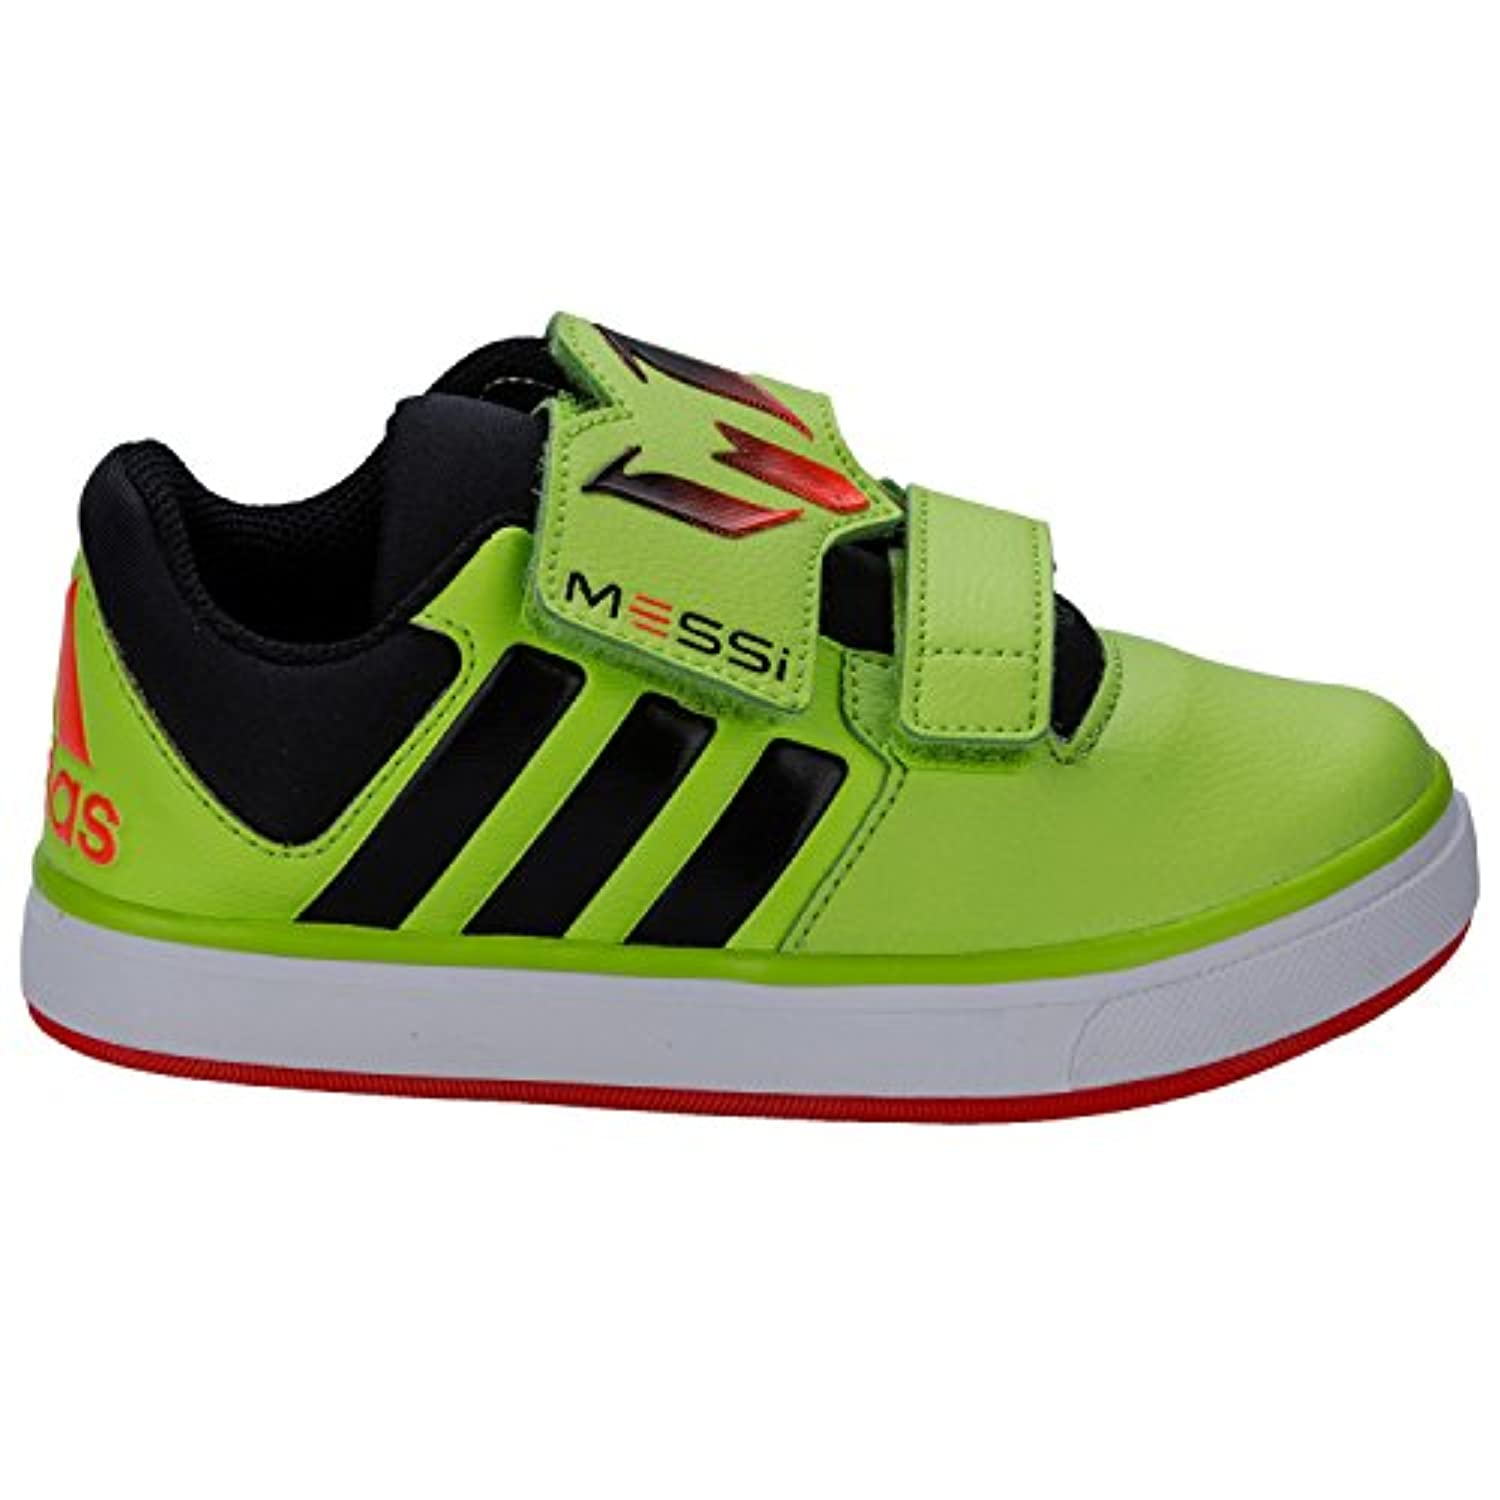 Boys adidas Children Boys Messi Trainers in Lime - 11 child